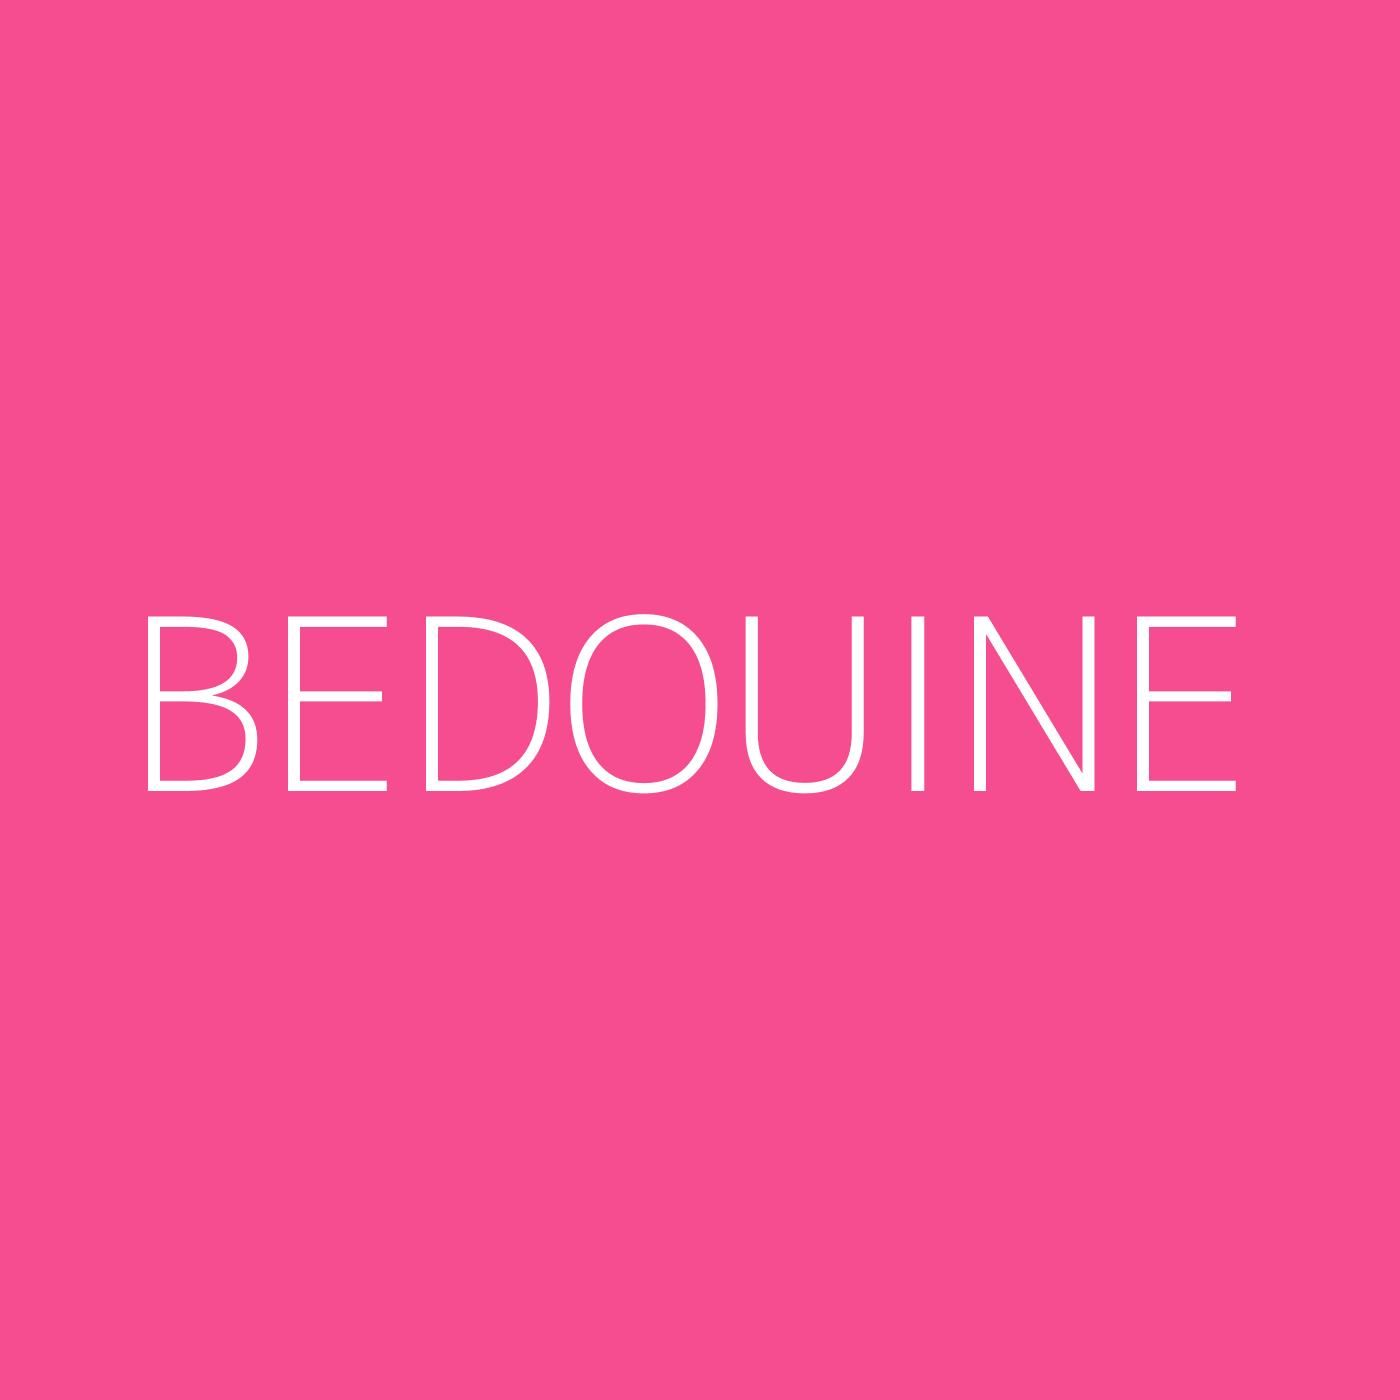 Bedouine Playlist Artwork